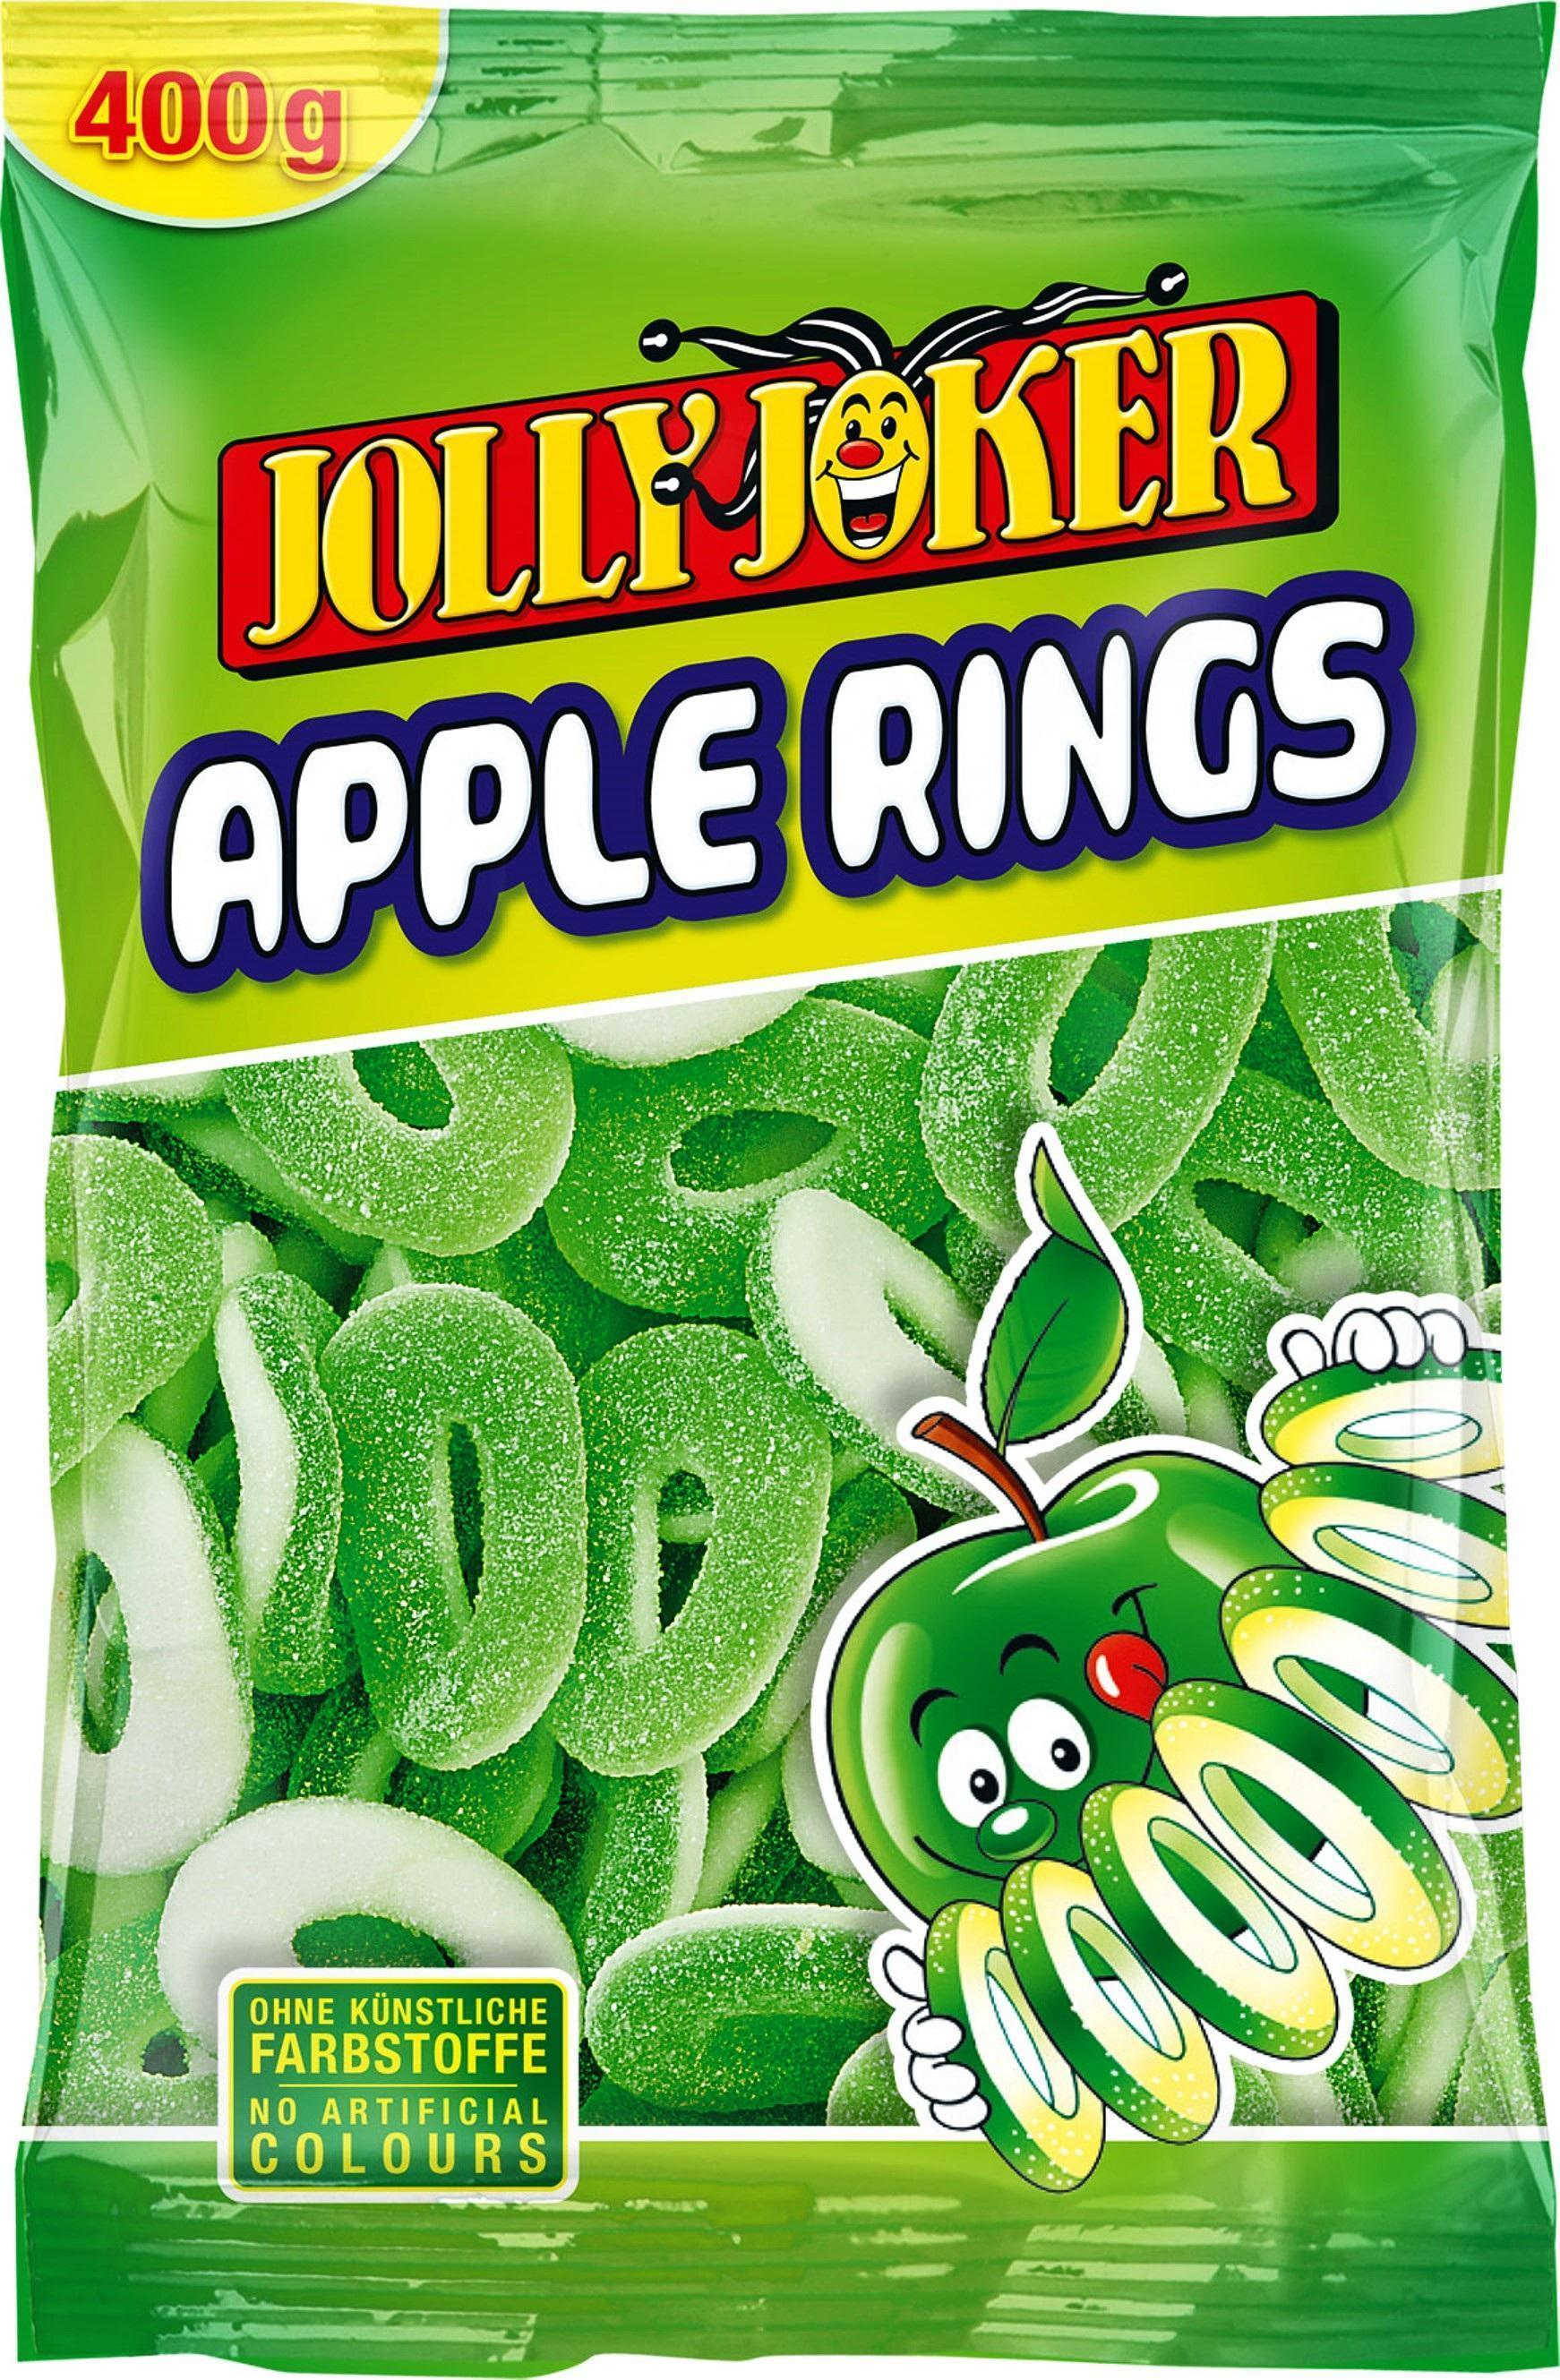 apfelringe_jolly_joker_400g1 Apple Rings Jolly Joker 400g